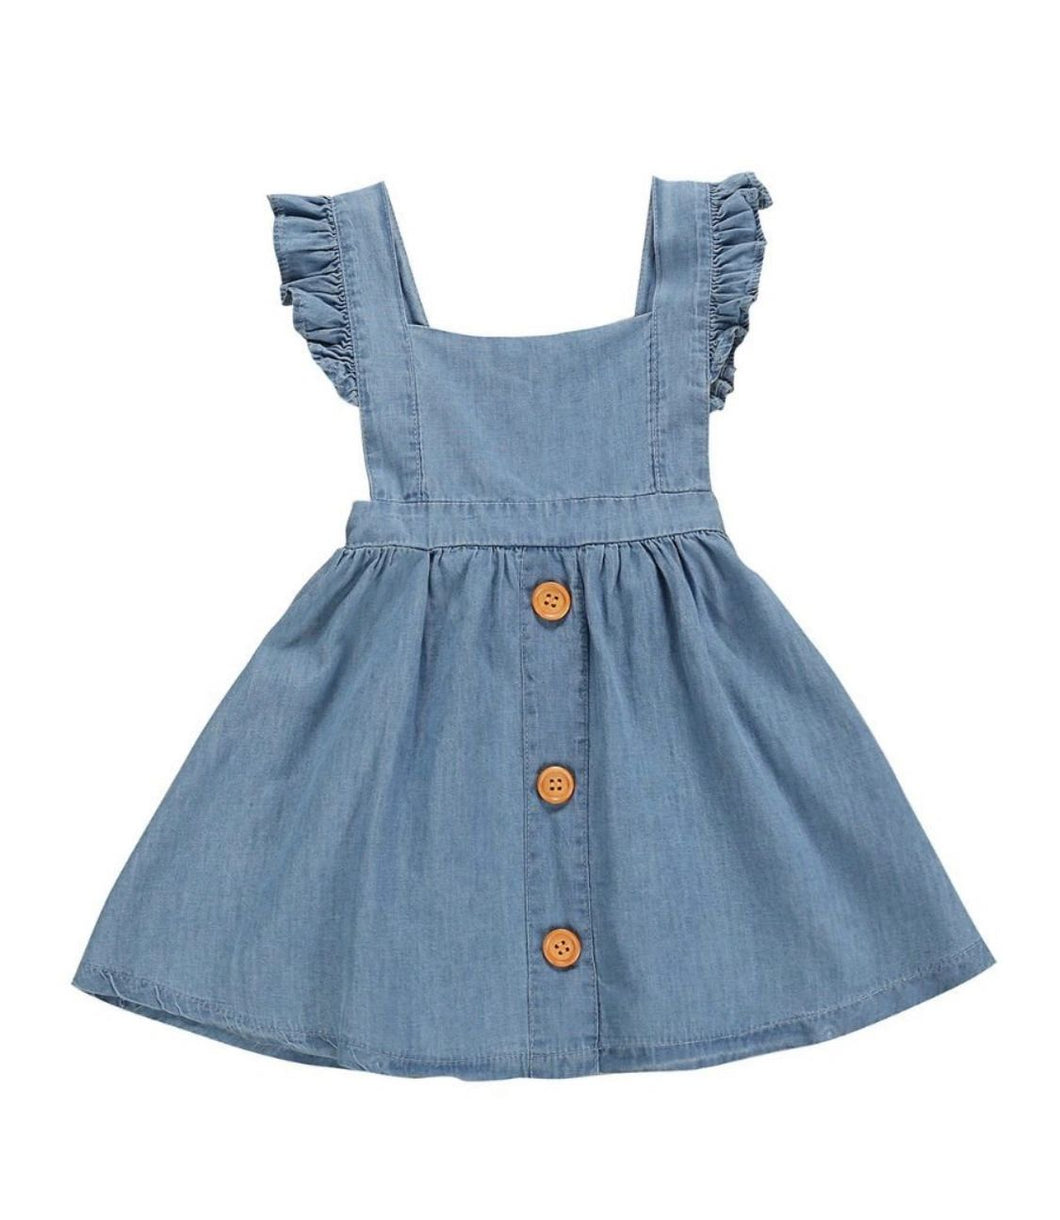 Girls ruffle sleeve backless denim style dress size 2